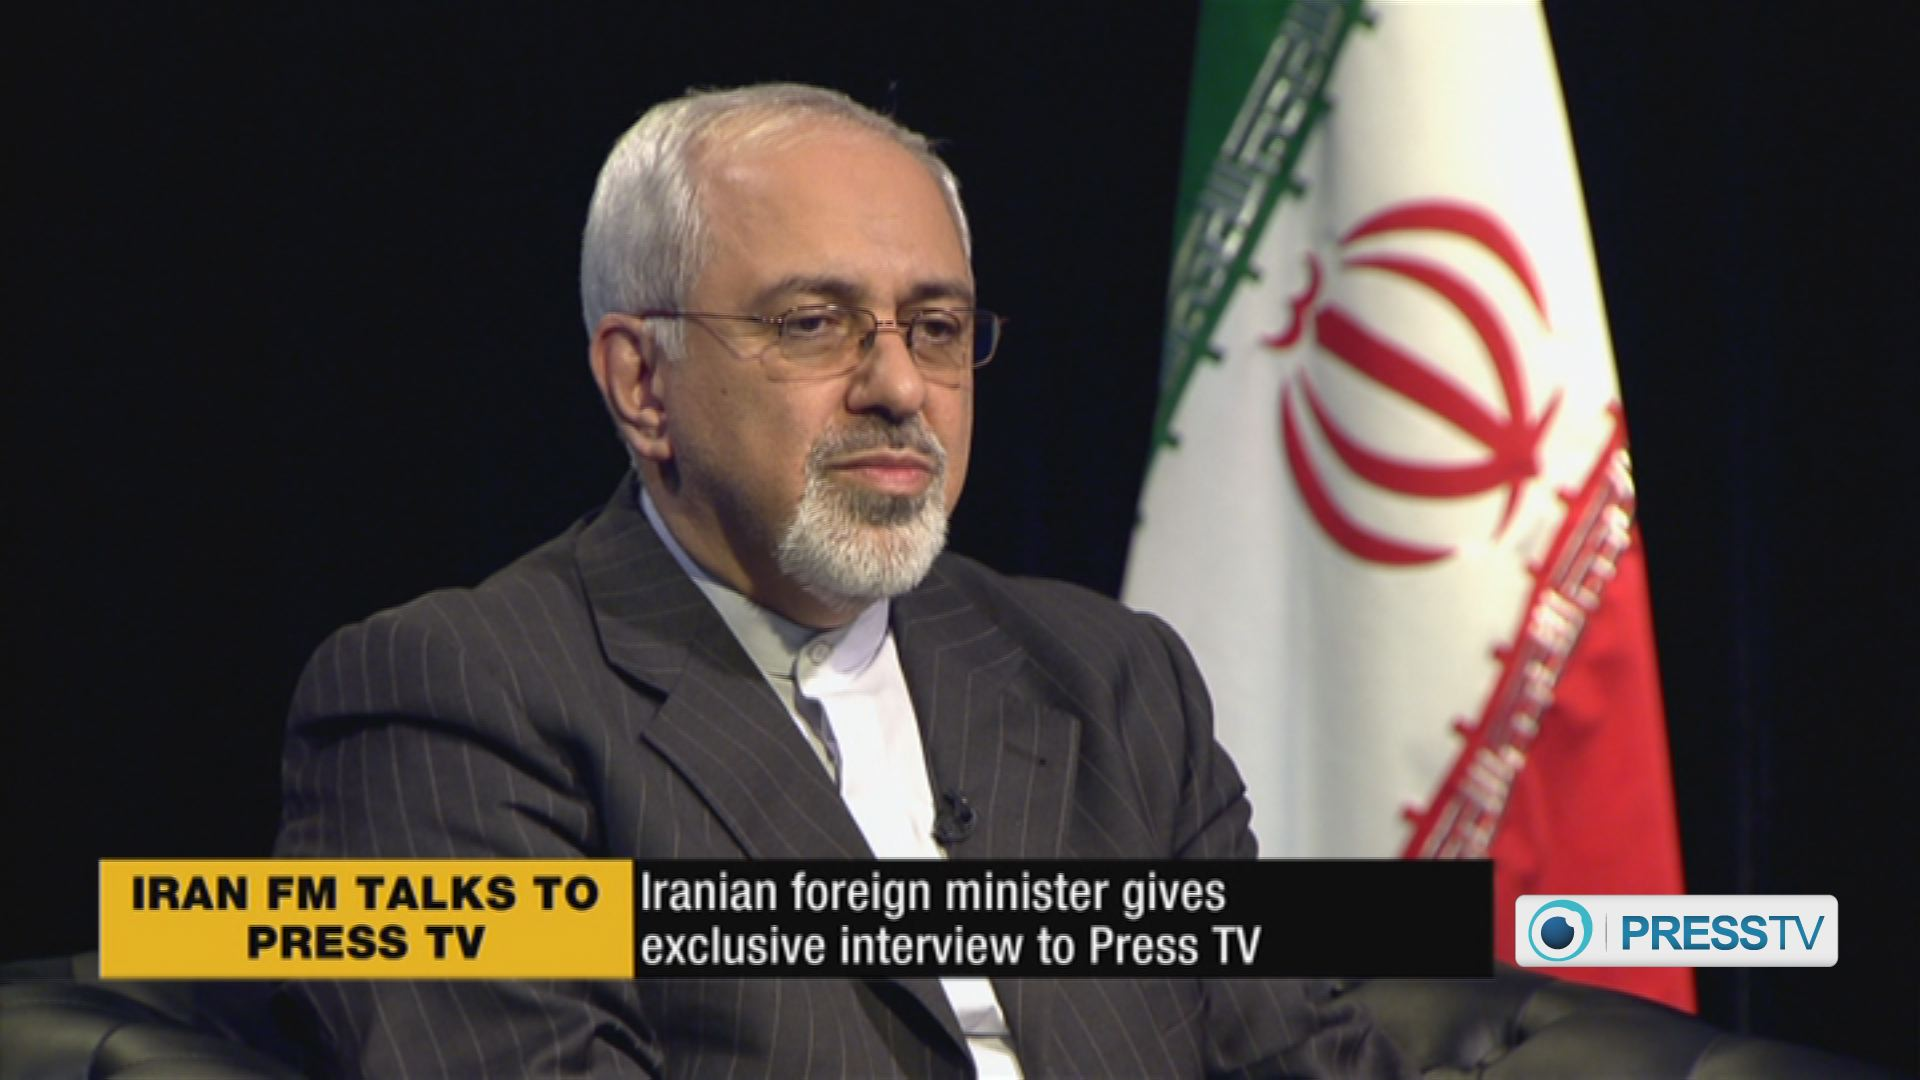 Iran FM criticizes Norway's expulsion of Iranian students